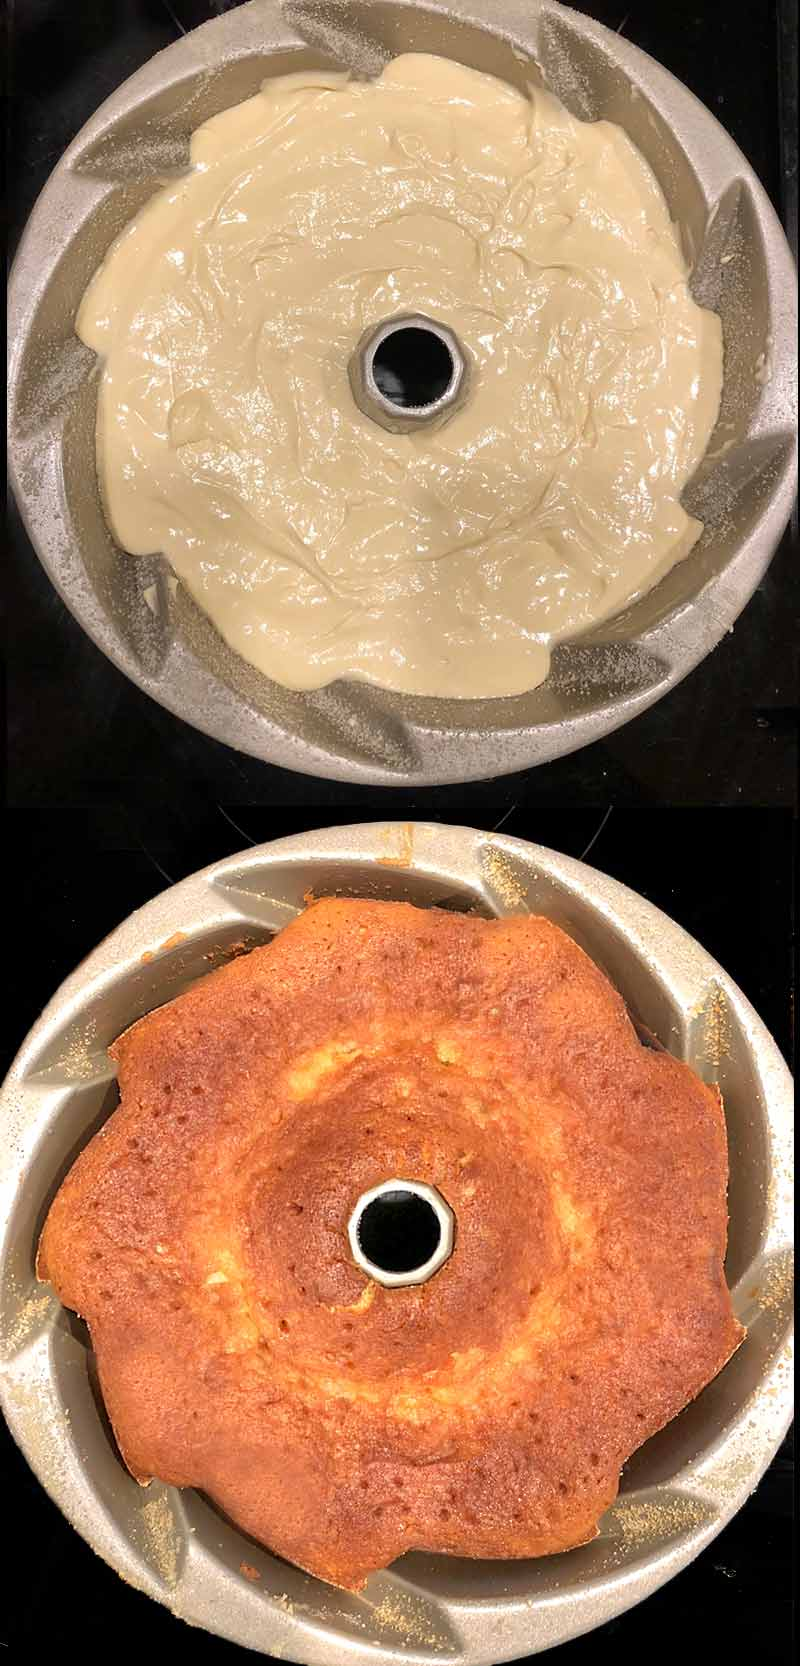 An overhead view showing batter freshly poured into a bundt cake pan, and the same pan with the baked cake in it fresh from the over.